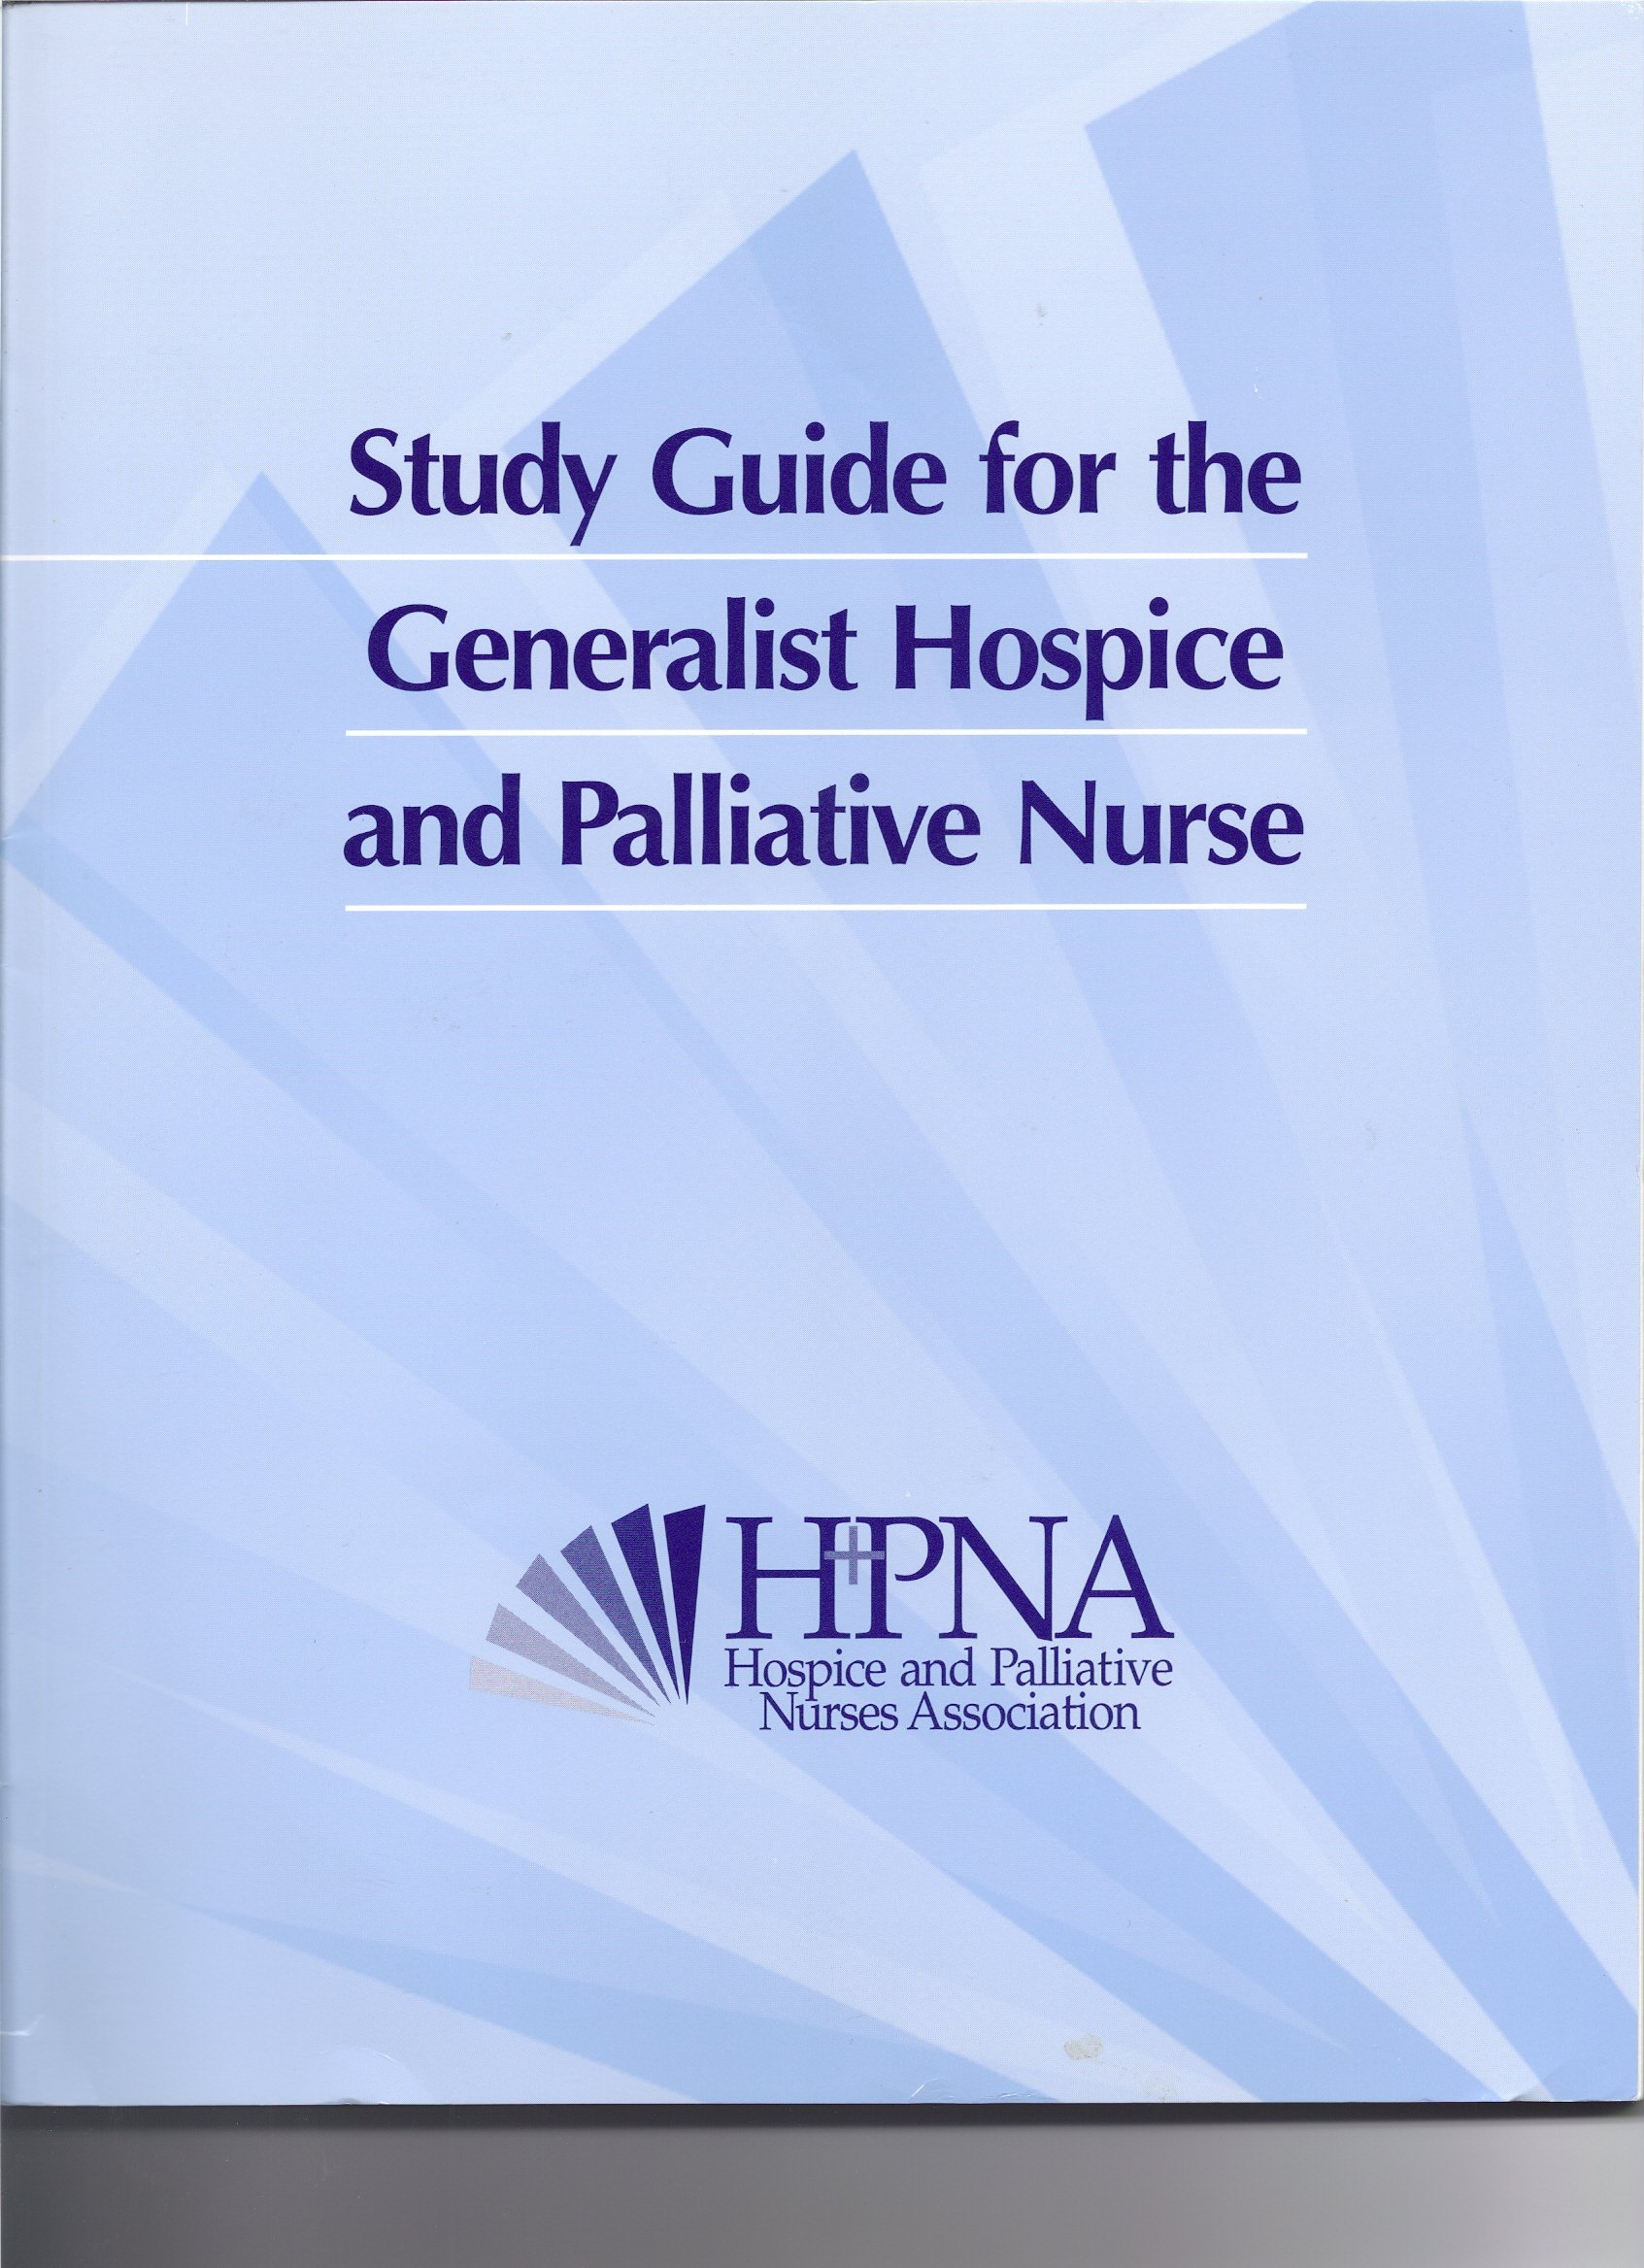 Study Guide for the Generalist Hospice and Palliative Nurse